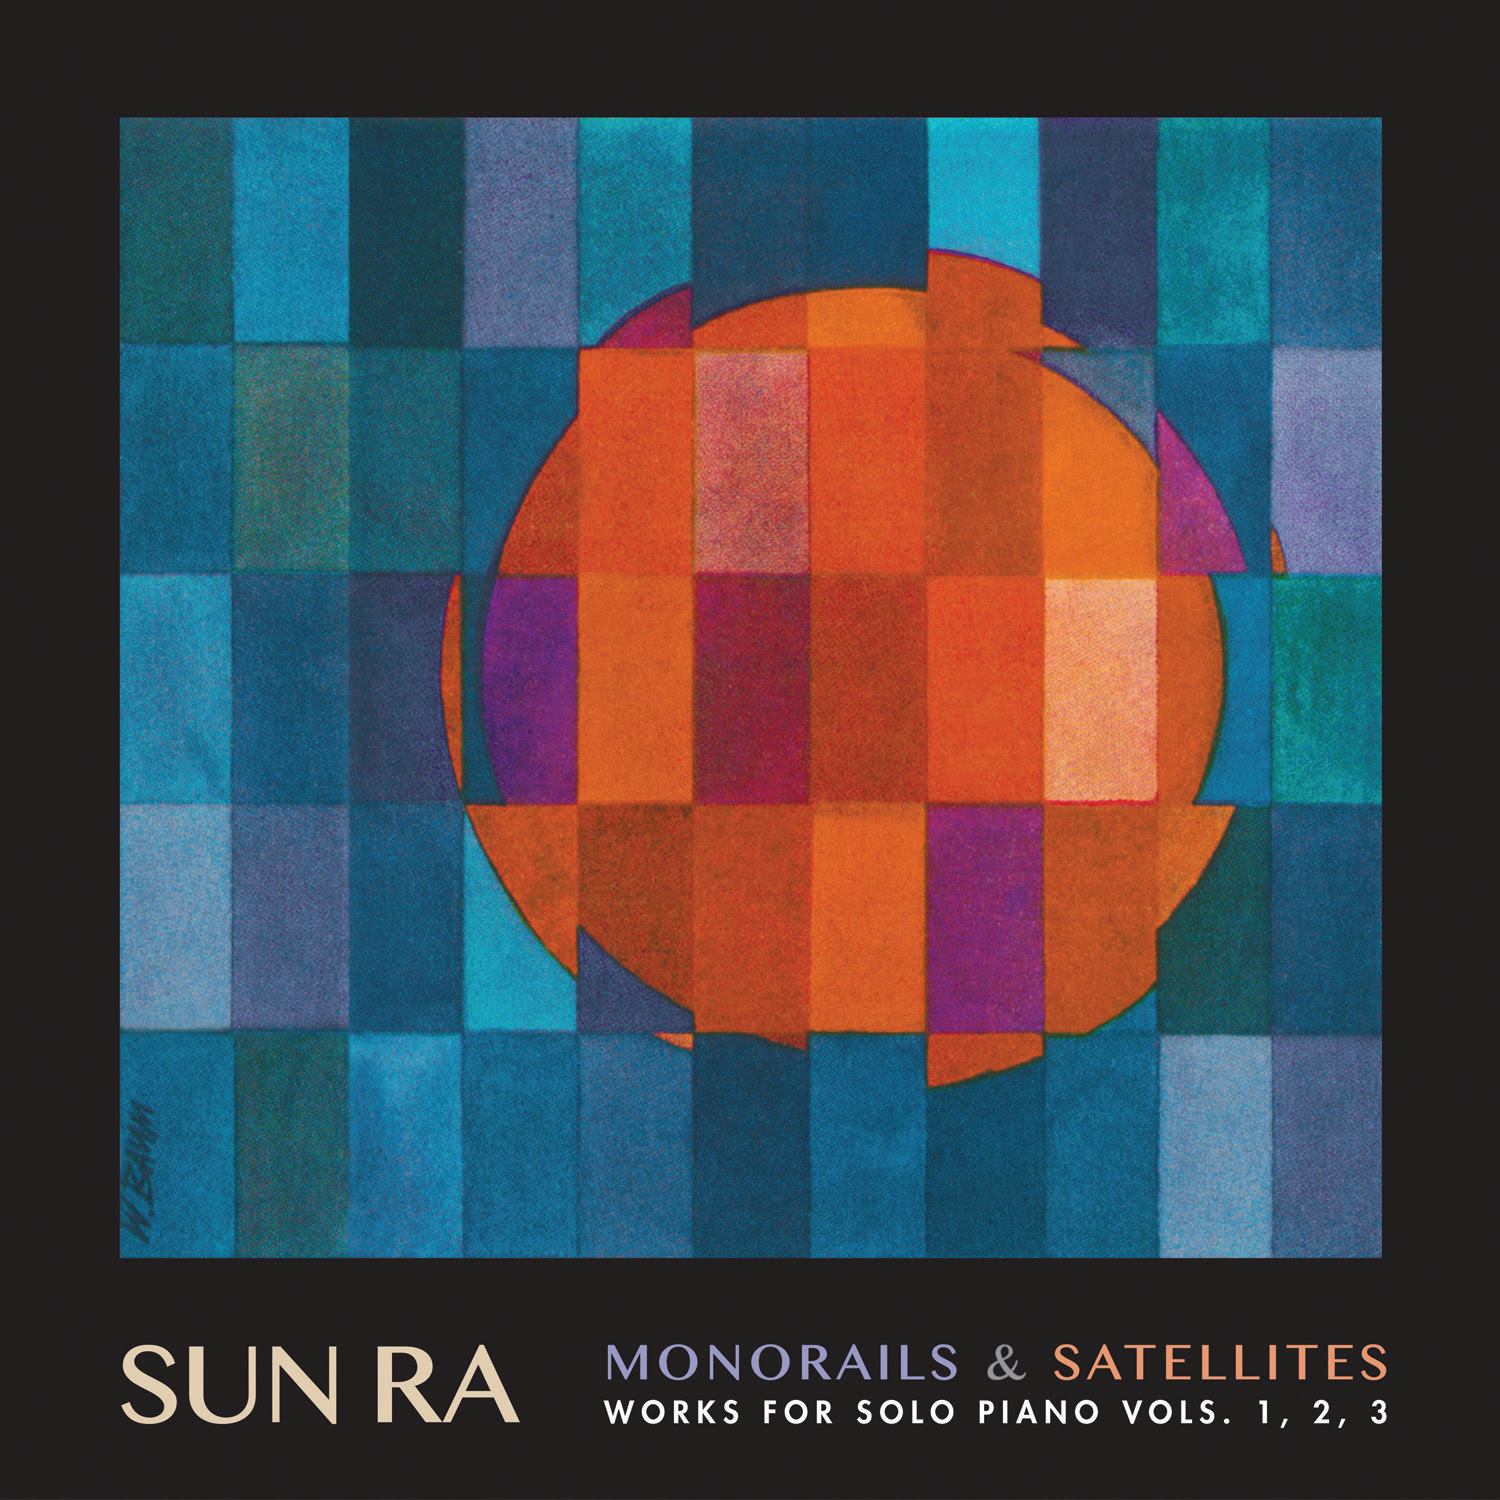 fd741874dc4 Monorails   Satellites - Works for Solo Piano Vols. 1